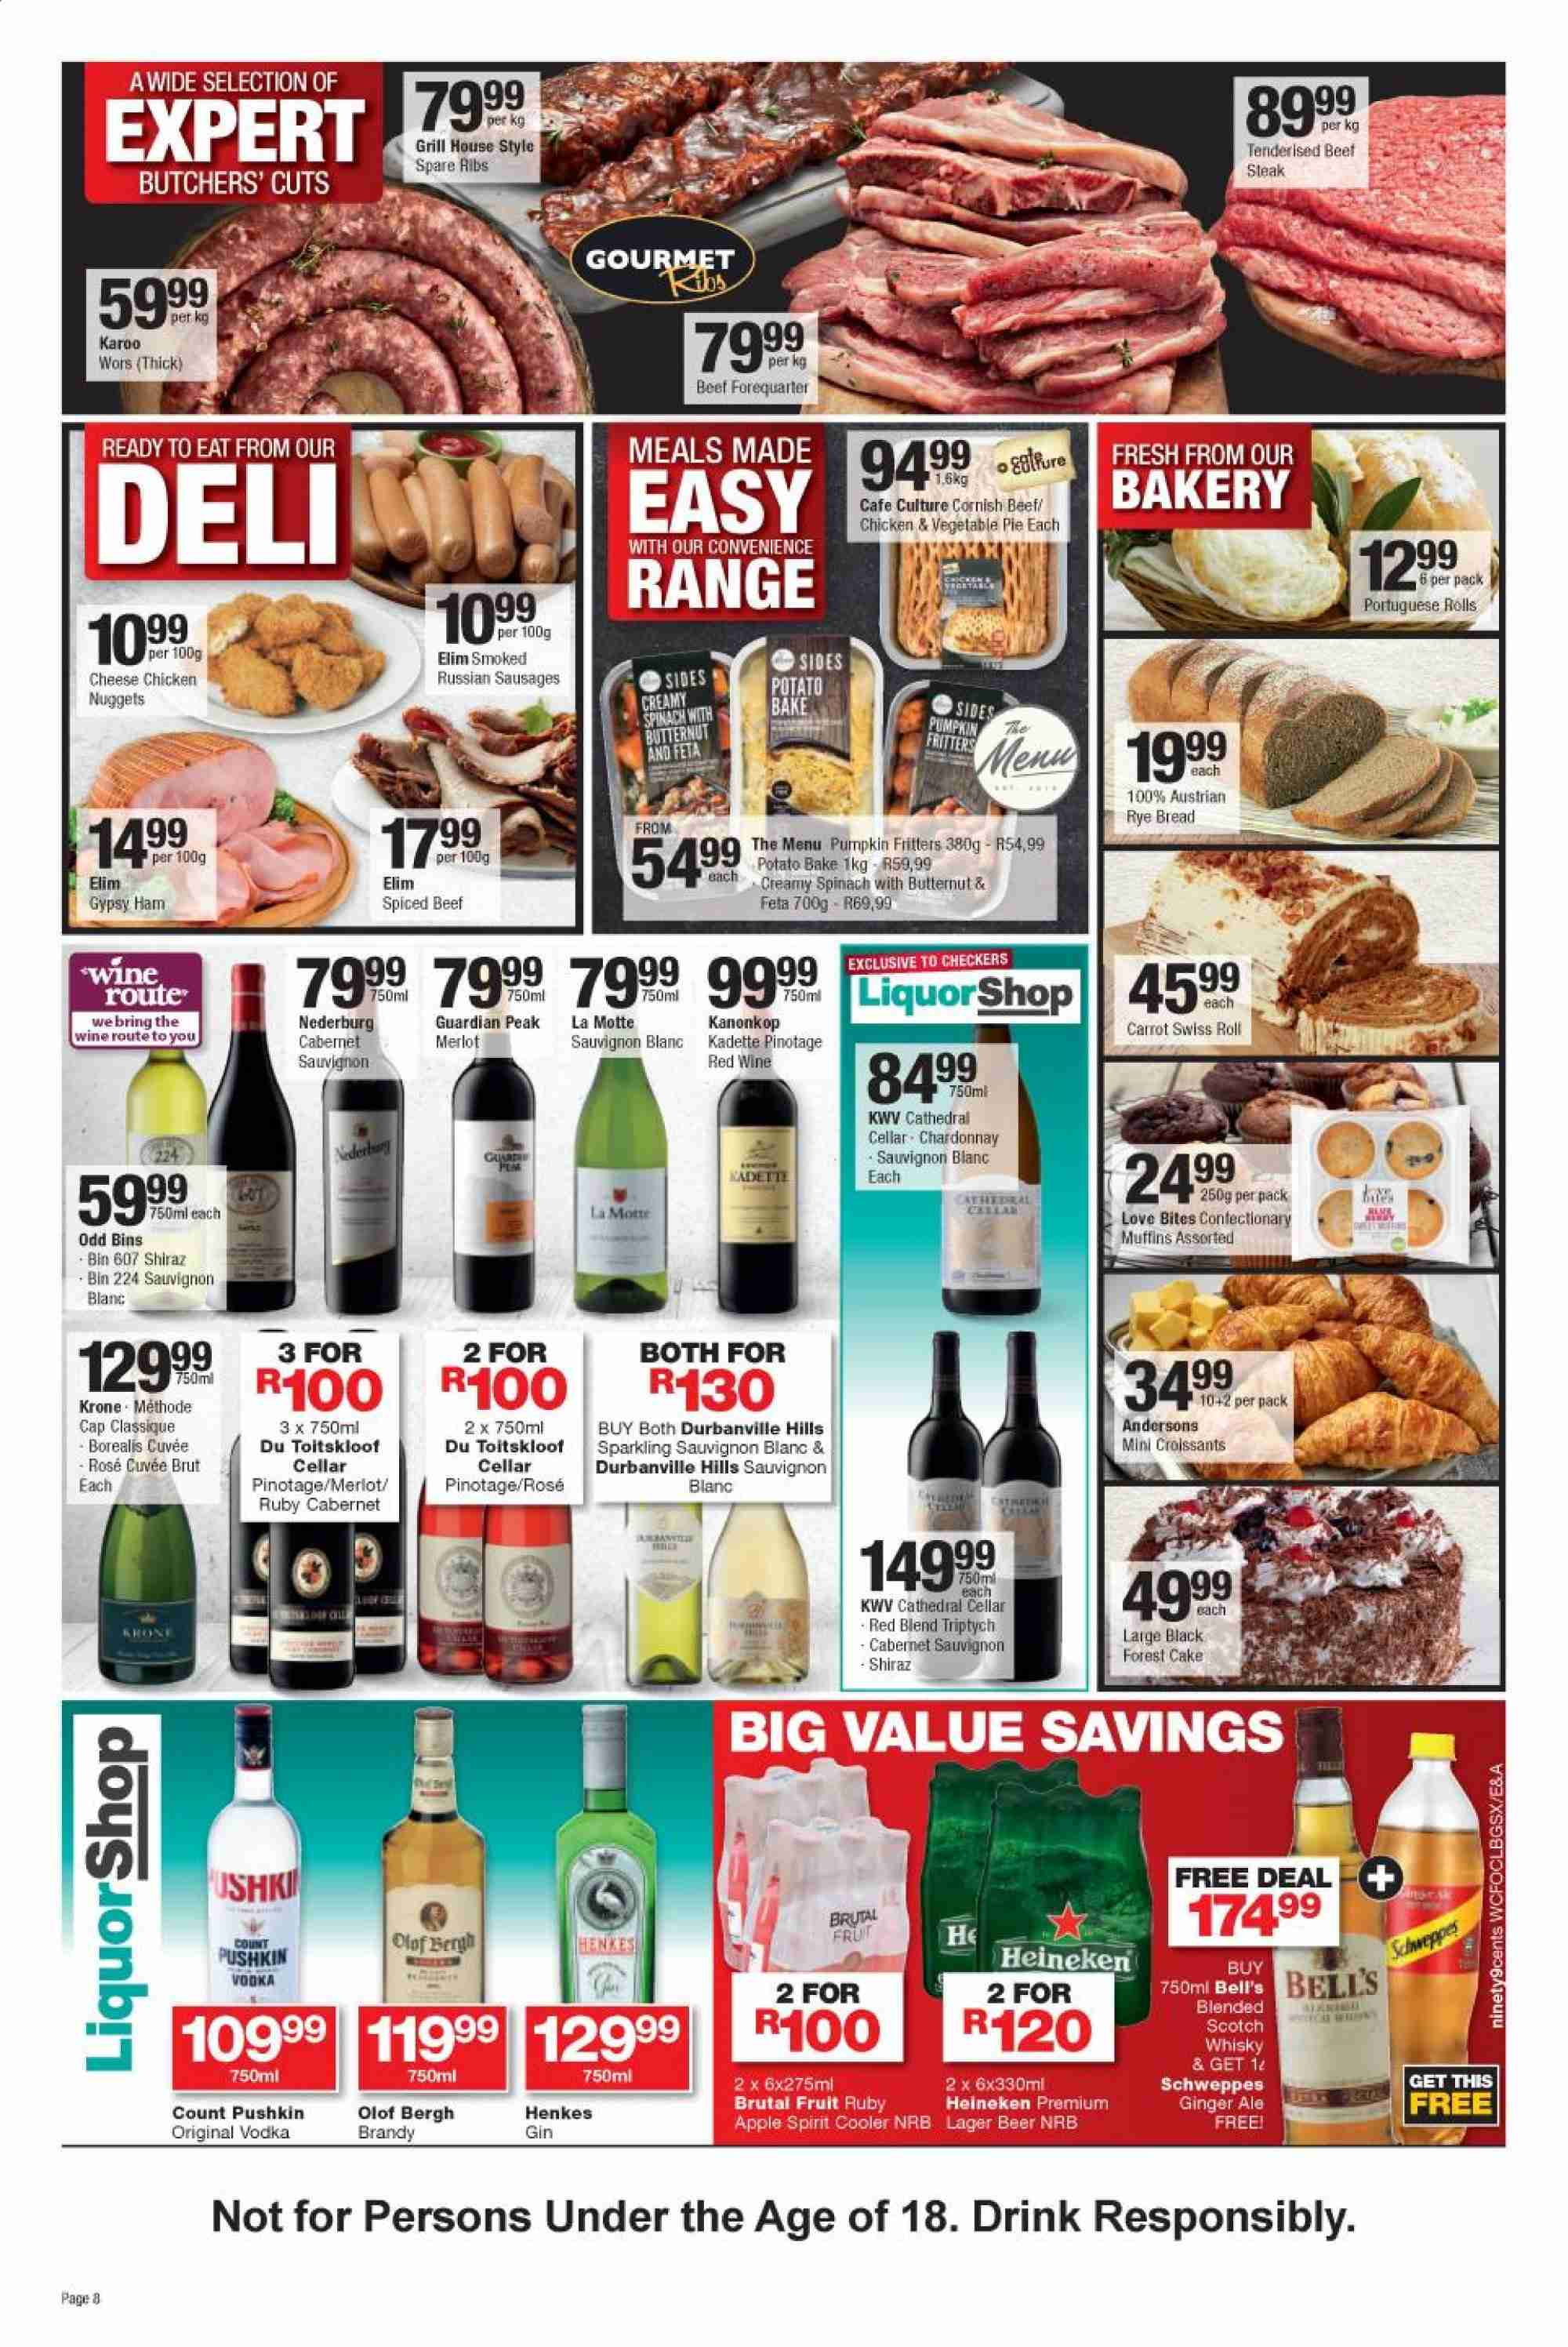 Checkers special - 08.21.2019 - 09.08.2019 - Sales products - ale, apple, beef meat, beef steak, beer, bin, brandy, bread, butternut squash, cabernet sauvignon, cap, croissants, feta, gin, ginger, ginger ale, grill, muffins, red wine, sausages, schweppes, spinach, vodka, whisky, ham, pumpkin, chardonnay, chicken, pork spare ribs, steak, pie, vegetable, nuggets, cooler, wine, cheese, ribs, cake, drink, bites, merlot, cabernet, fruit, heineken, swiss roll, rolls. Page 8.